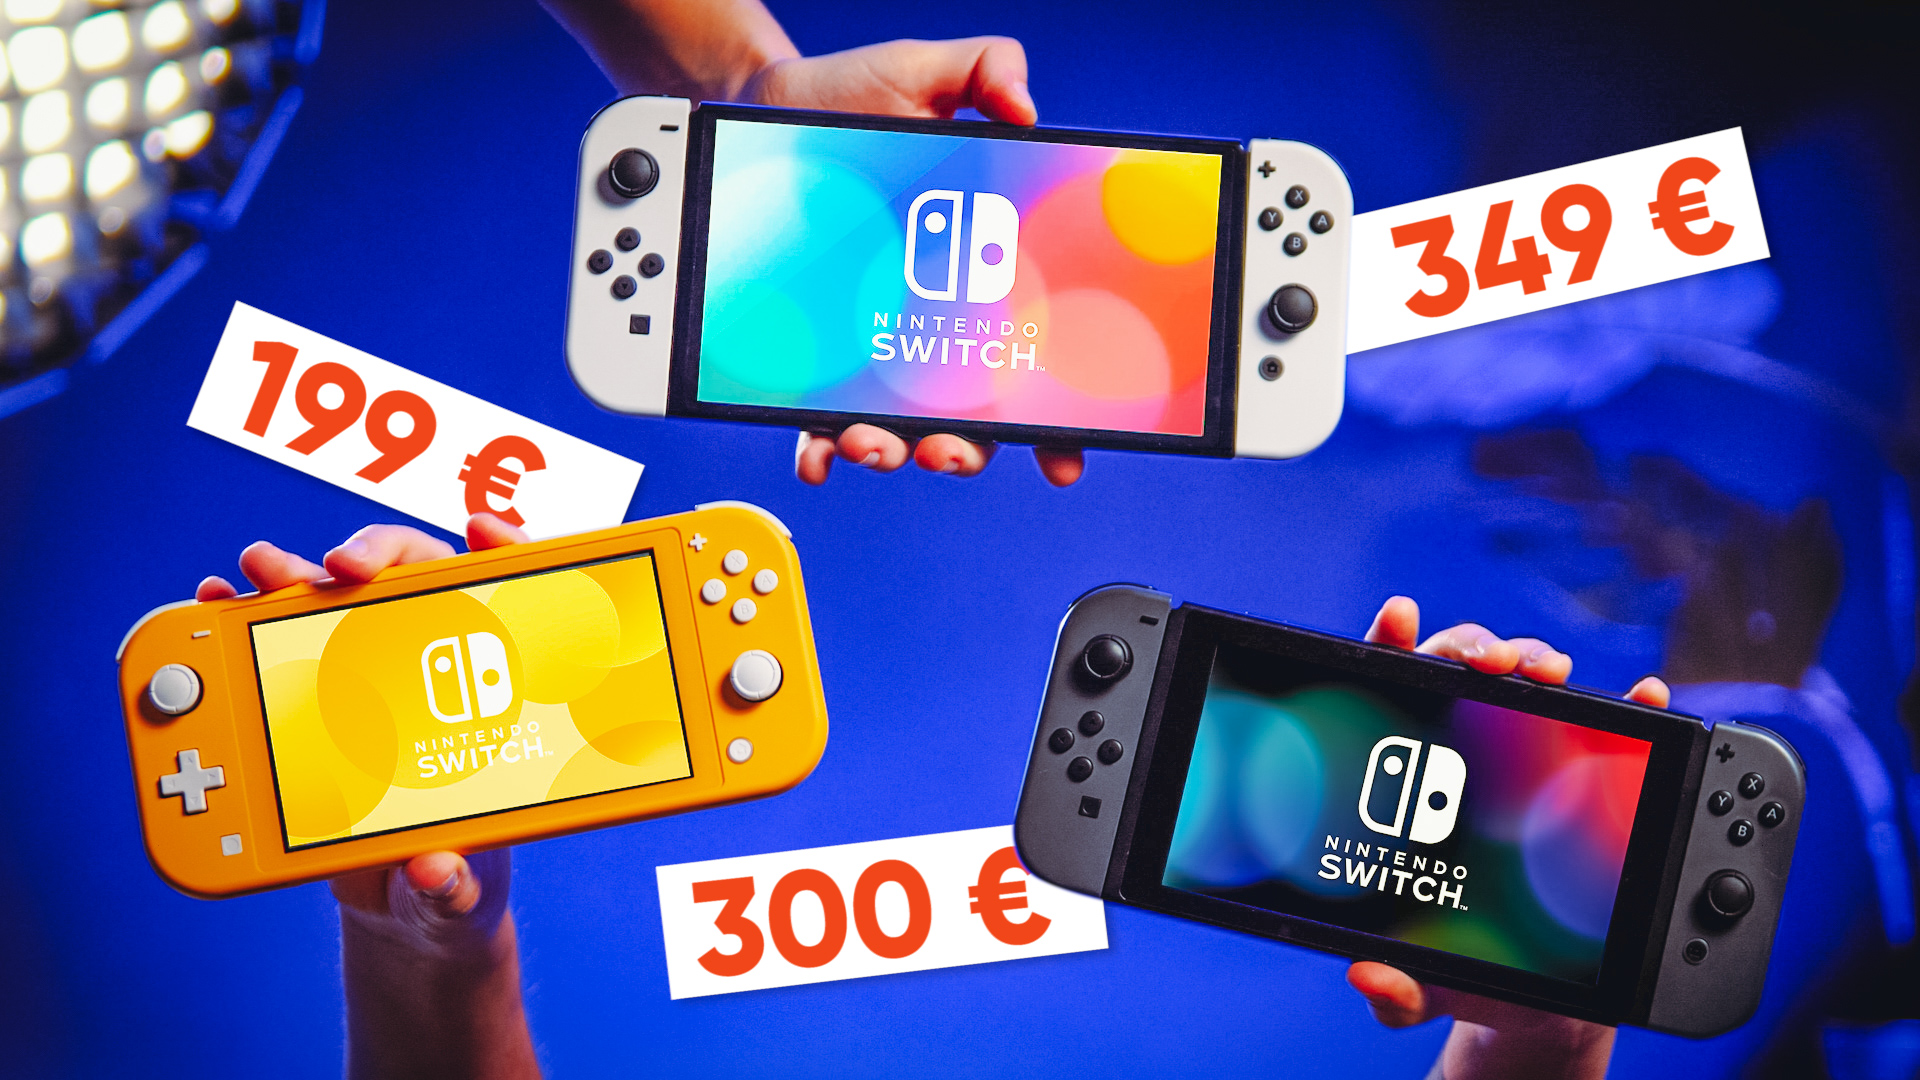 QUELLE Nintendo SWITCH choisir ? (Switch OLED vs Switch vs Switch Lite)